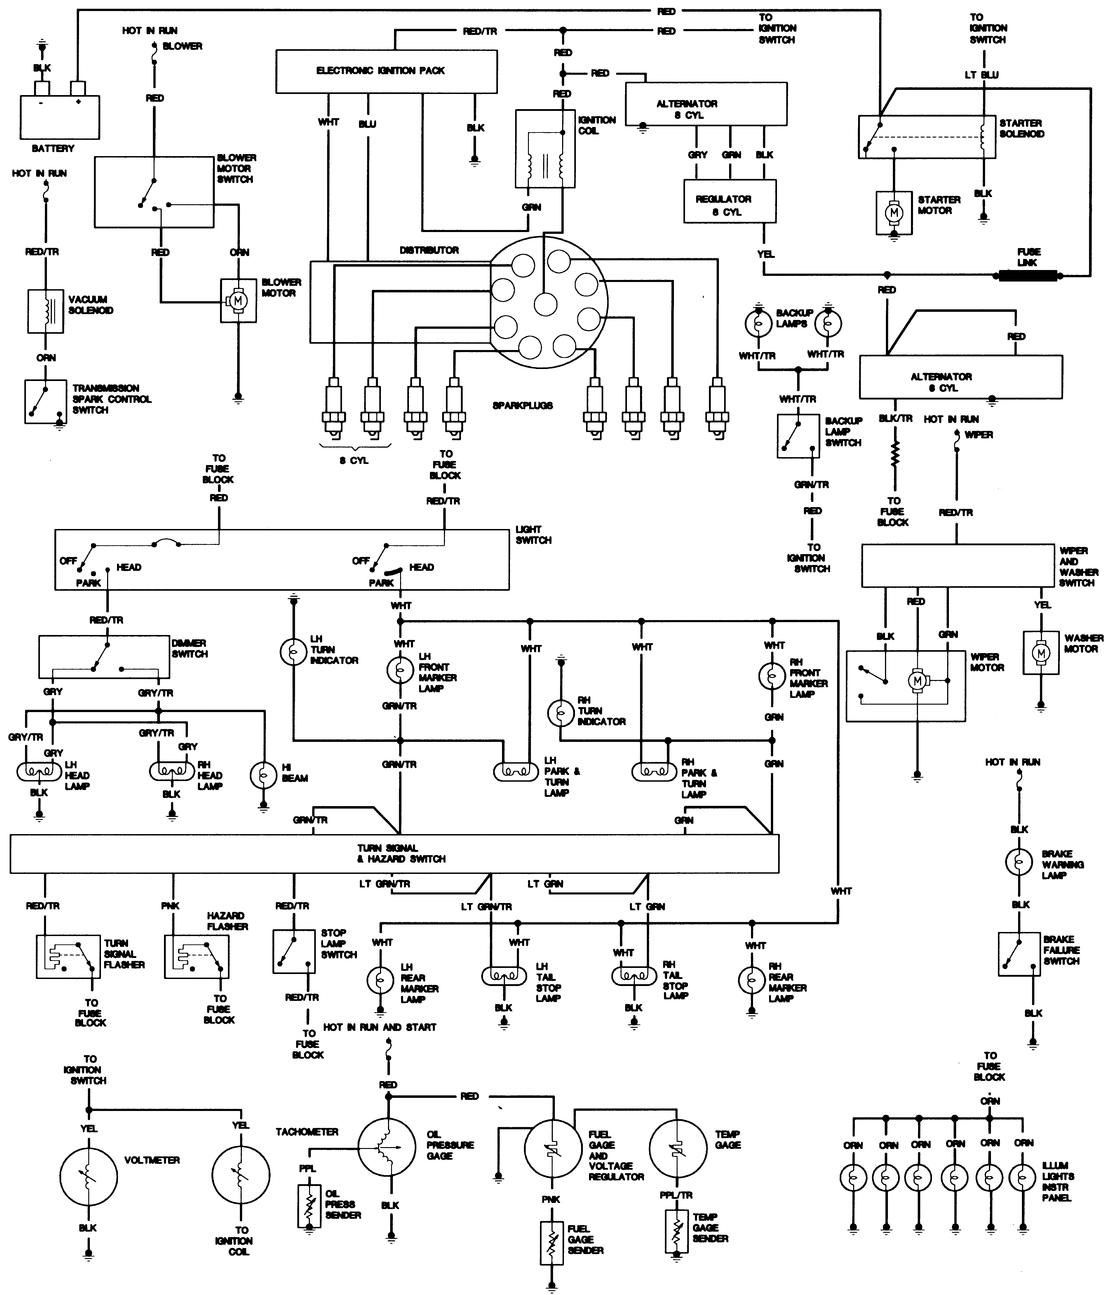 cj5 jeep wiring online wiring diagram Simple Diagram for Turn Signal Motorcycles 1980 cj5 wiring diagram furthermore jeep cj7 tachometer wiring1980 cj5 wiring diagram furthermore jeep cj7 tachometer